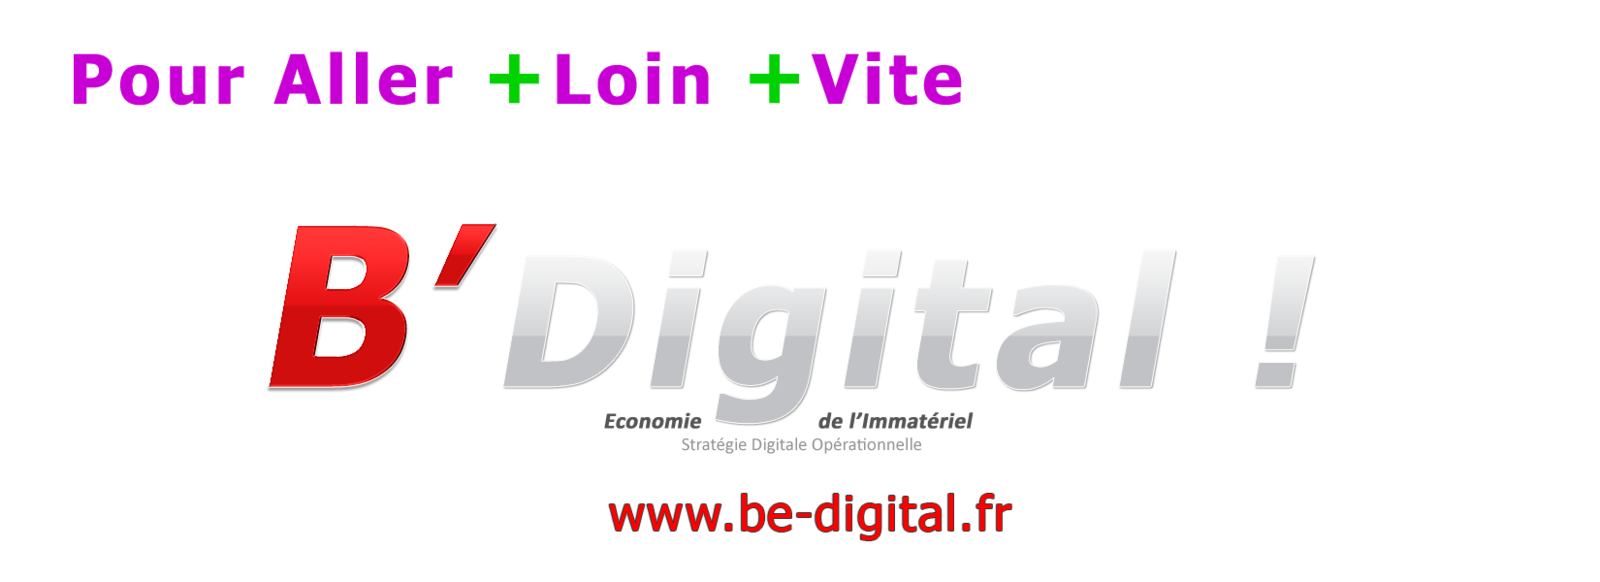 www.be-digital.fr